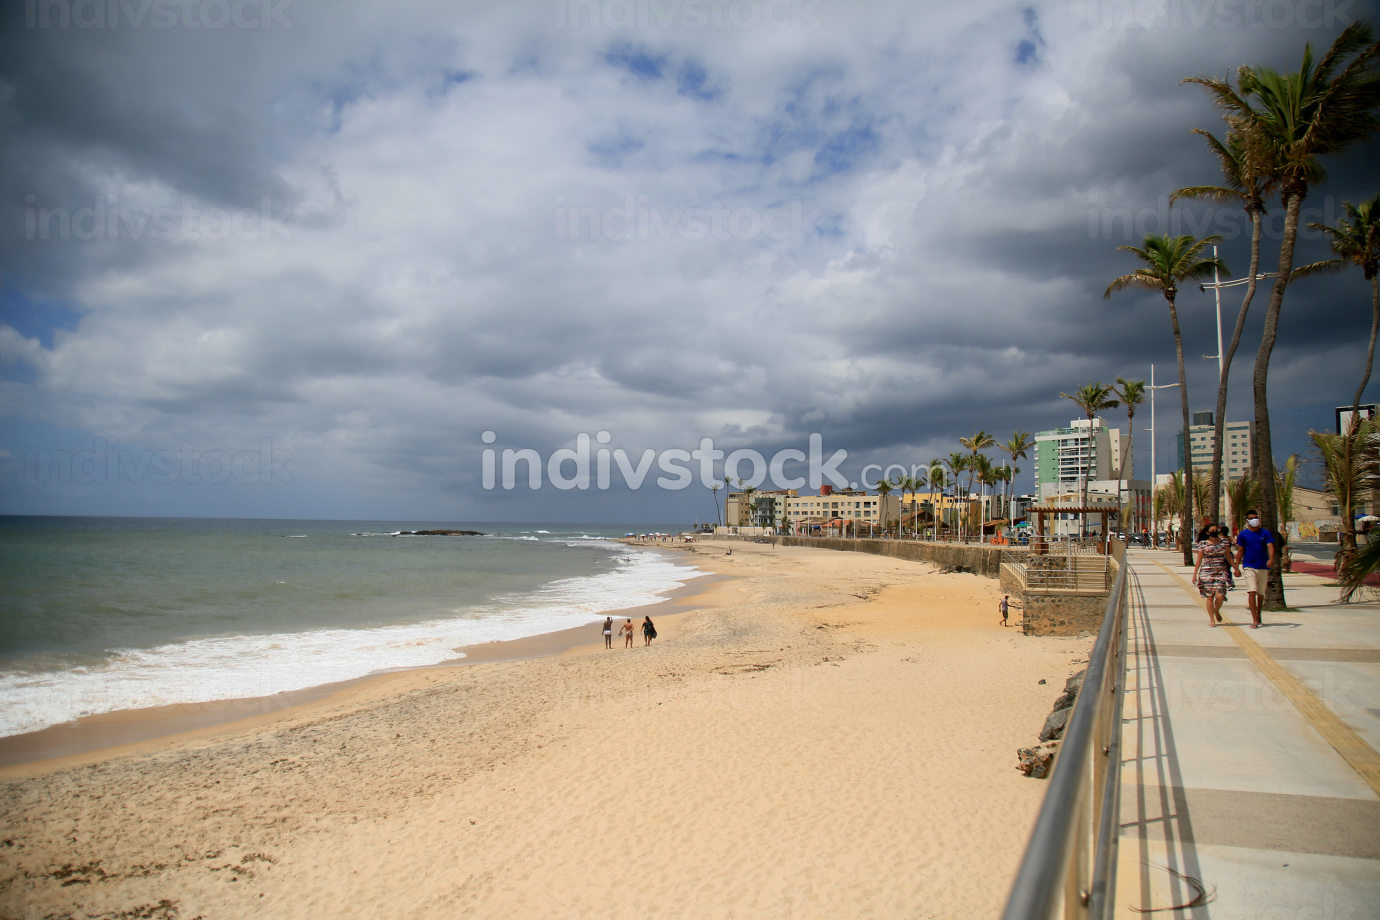 salvador, bahia, brazil-february 5, 2021: view of clouds carried in the sky, at Amaralina beach, in the city of Salvador.